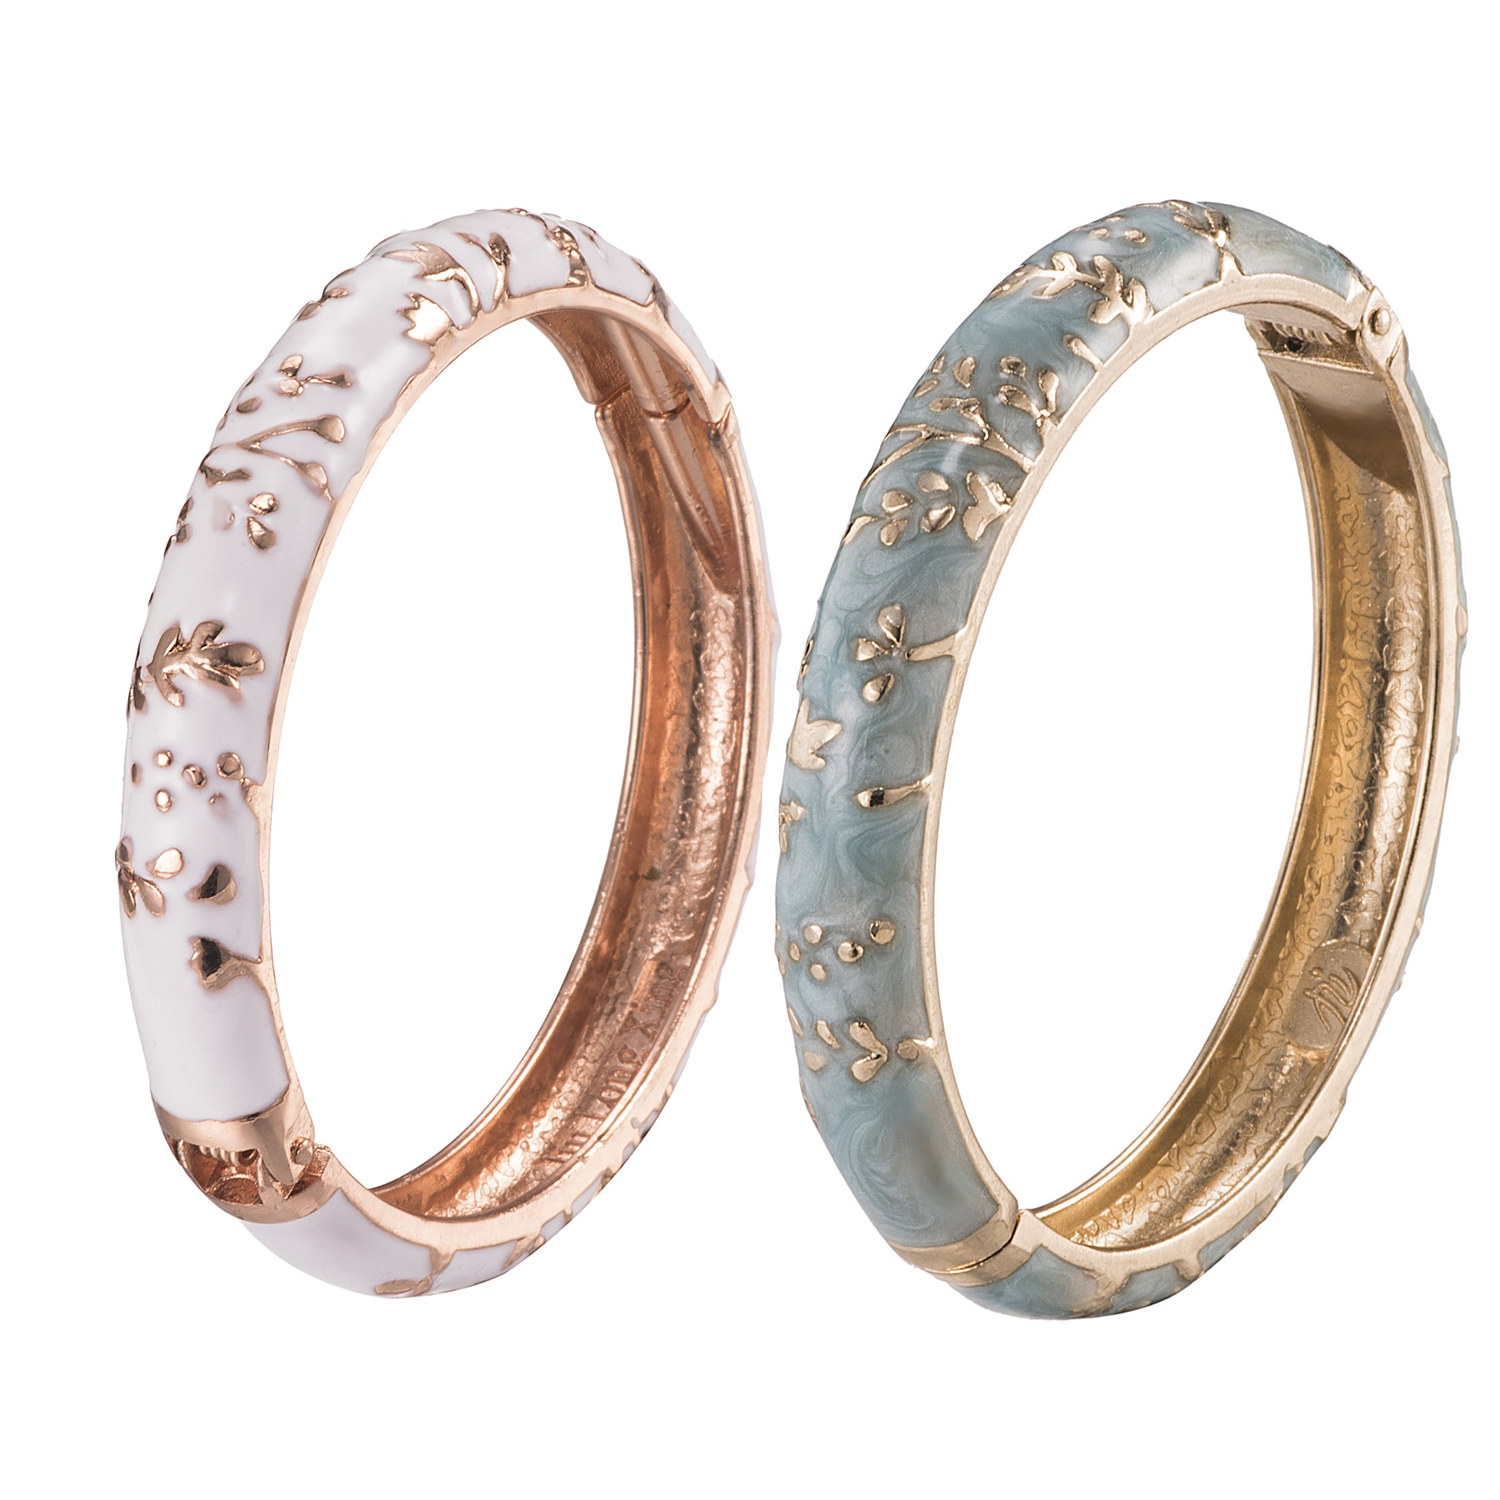 Ujoy Coral Bracelet Jewelry womens environmental protection alloy Cloisonne oil dripping accessory gift